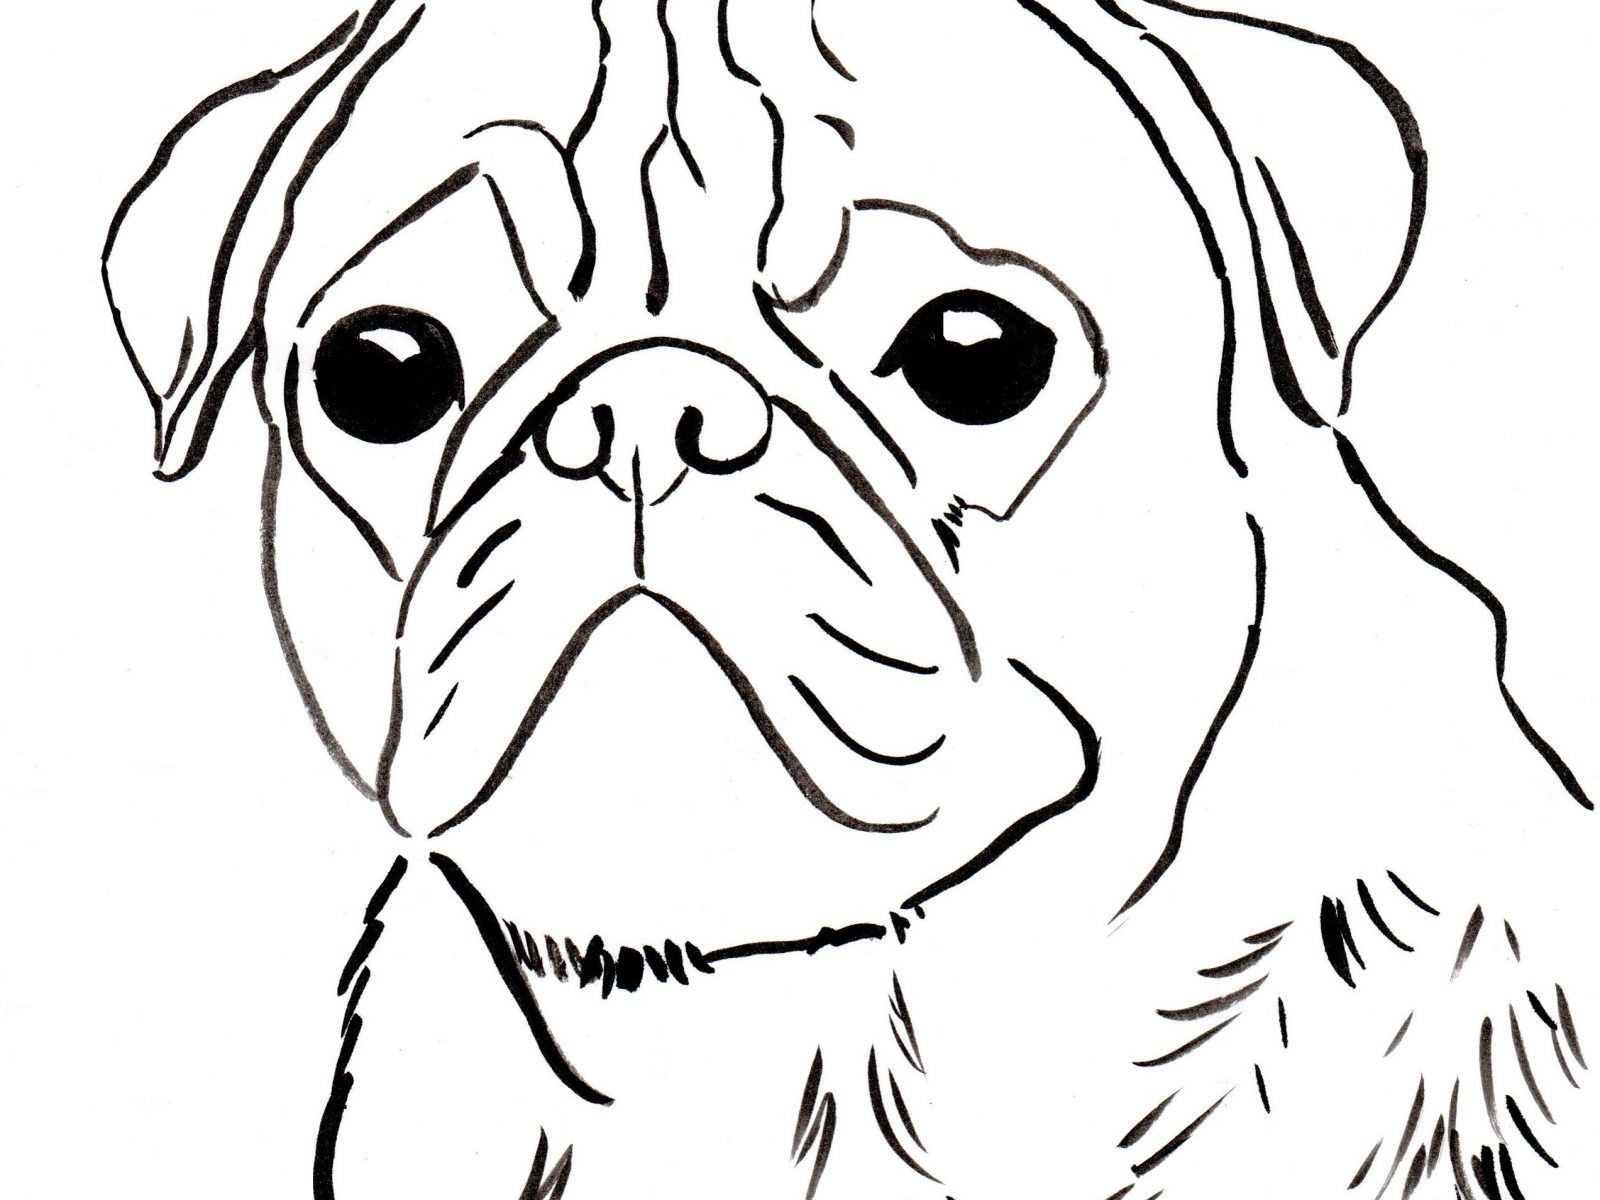 Pug Puppy Coloring Pages Pug Coloring Pages Beautiful Chinese Pug Coloring Pages Puppy